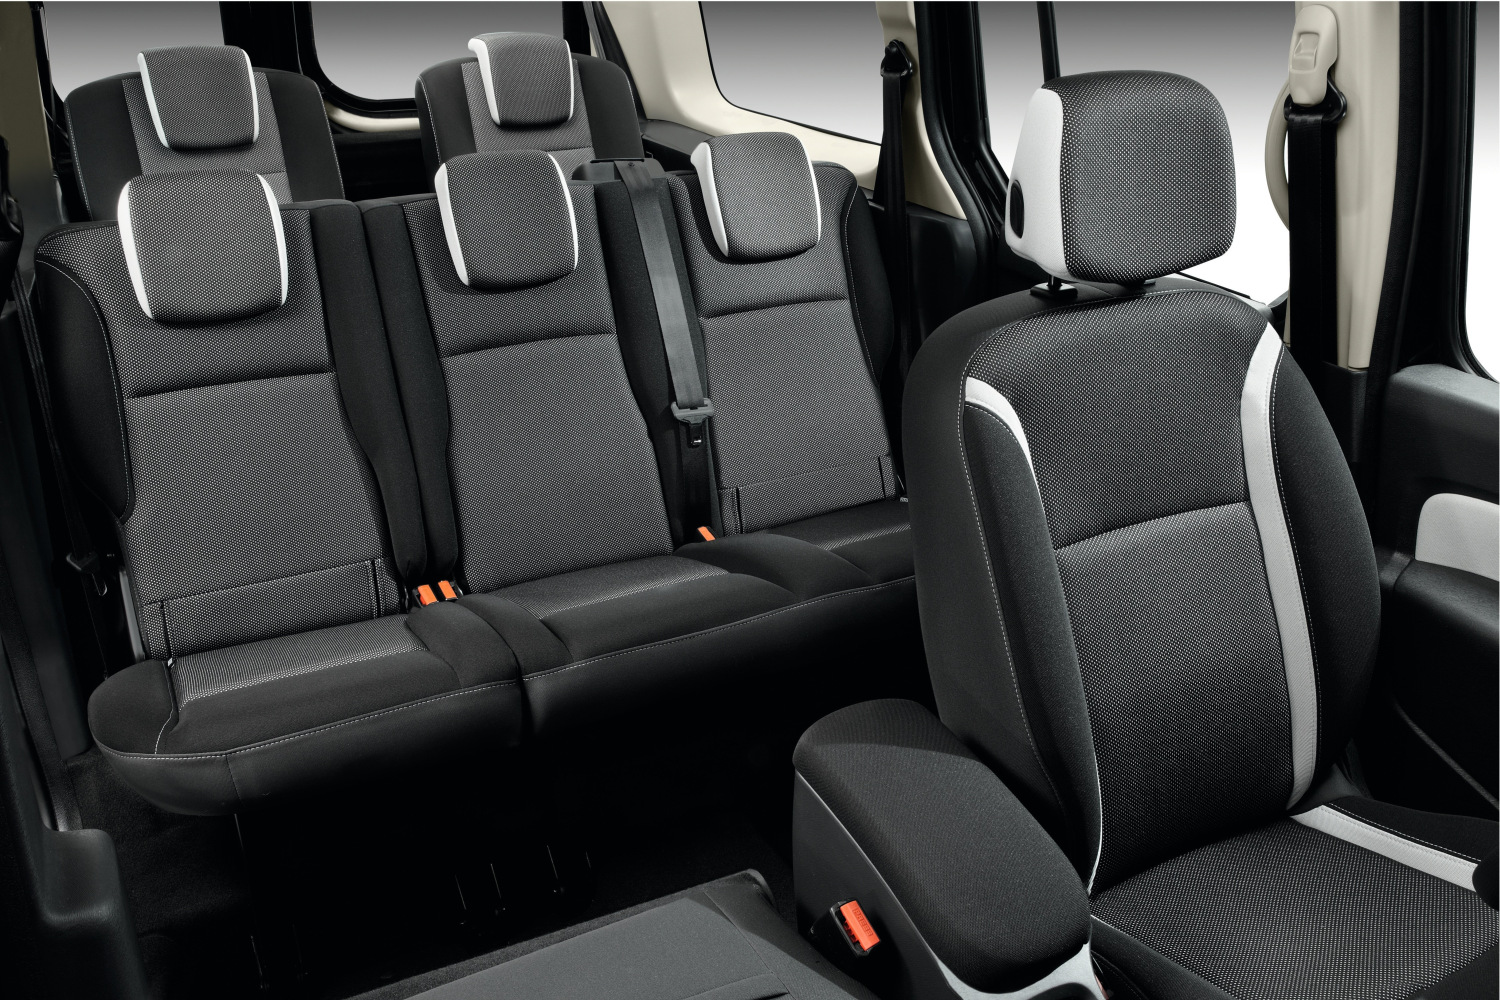 renault kangoo 2013 precios de la nueva gama. Black Bedroom Furniture Sets. Home Design Ideas